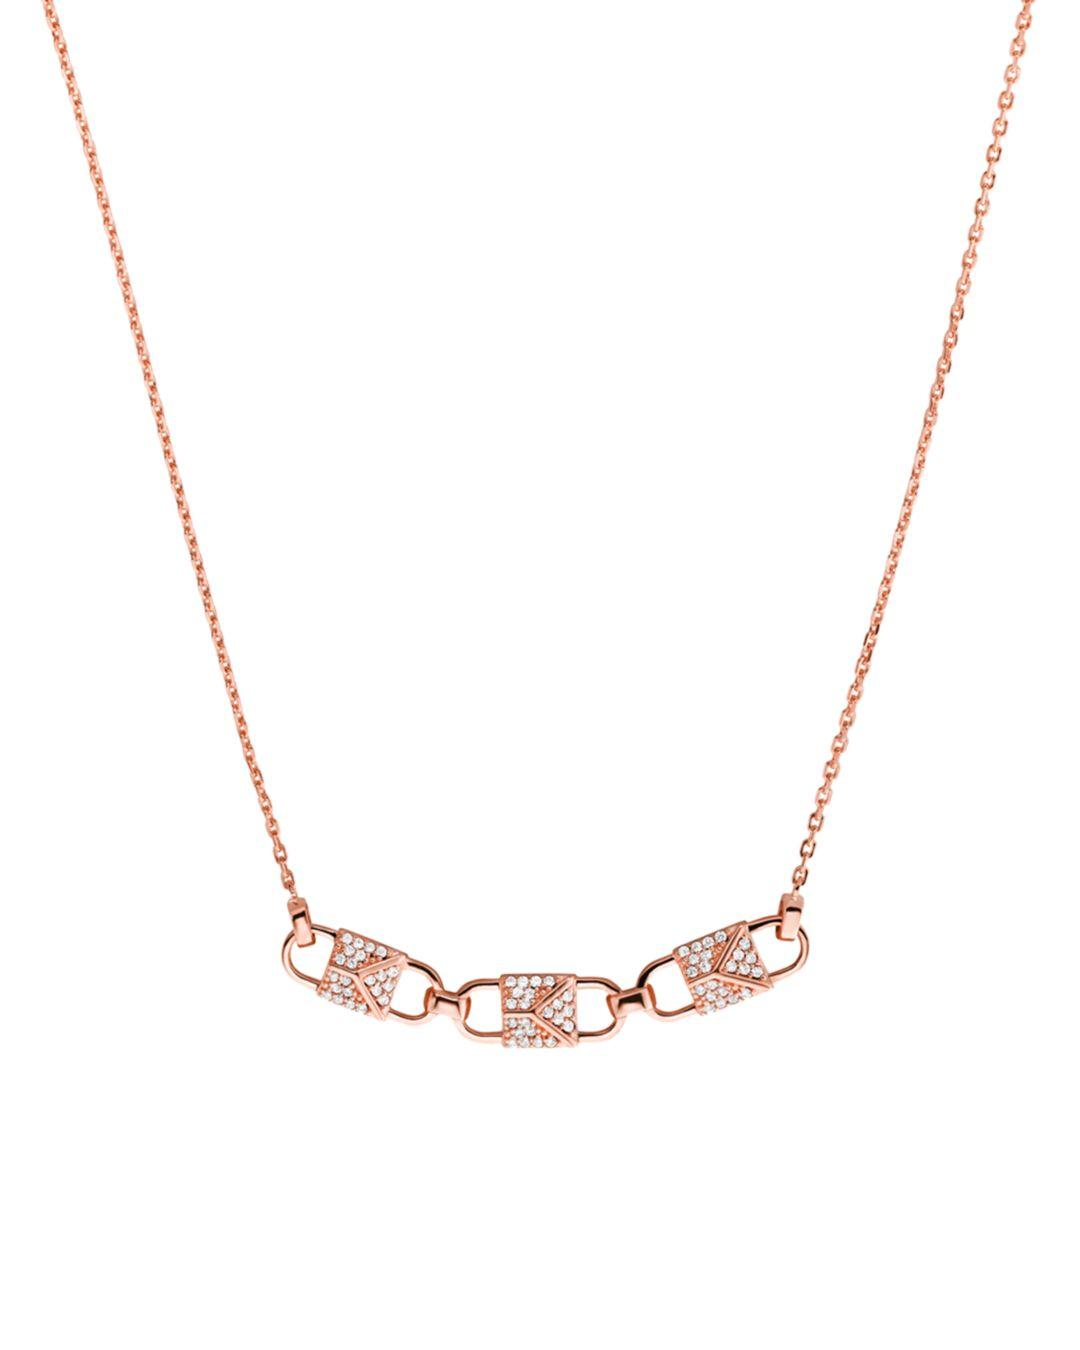 47c3aa59786a2 Lyst - Michael Kors 14k Rose Gold-plated Sterling Silver Or Sterling ...